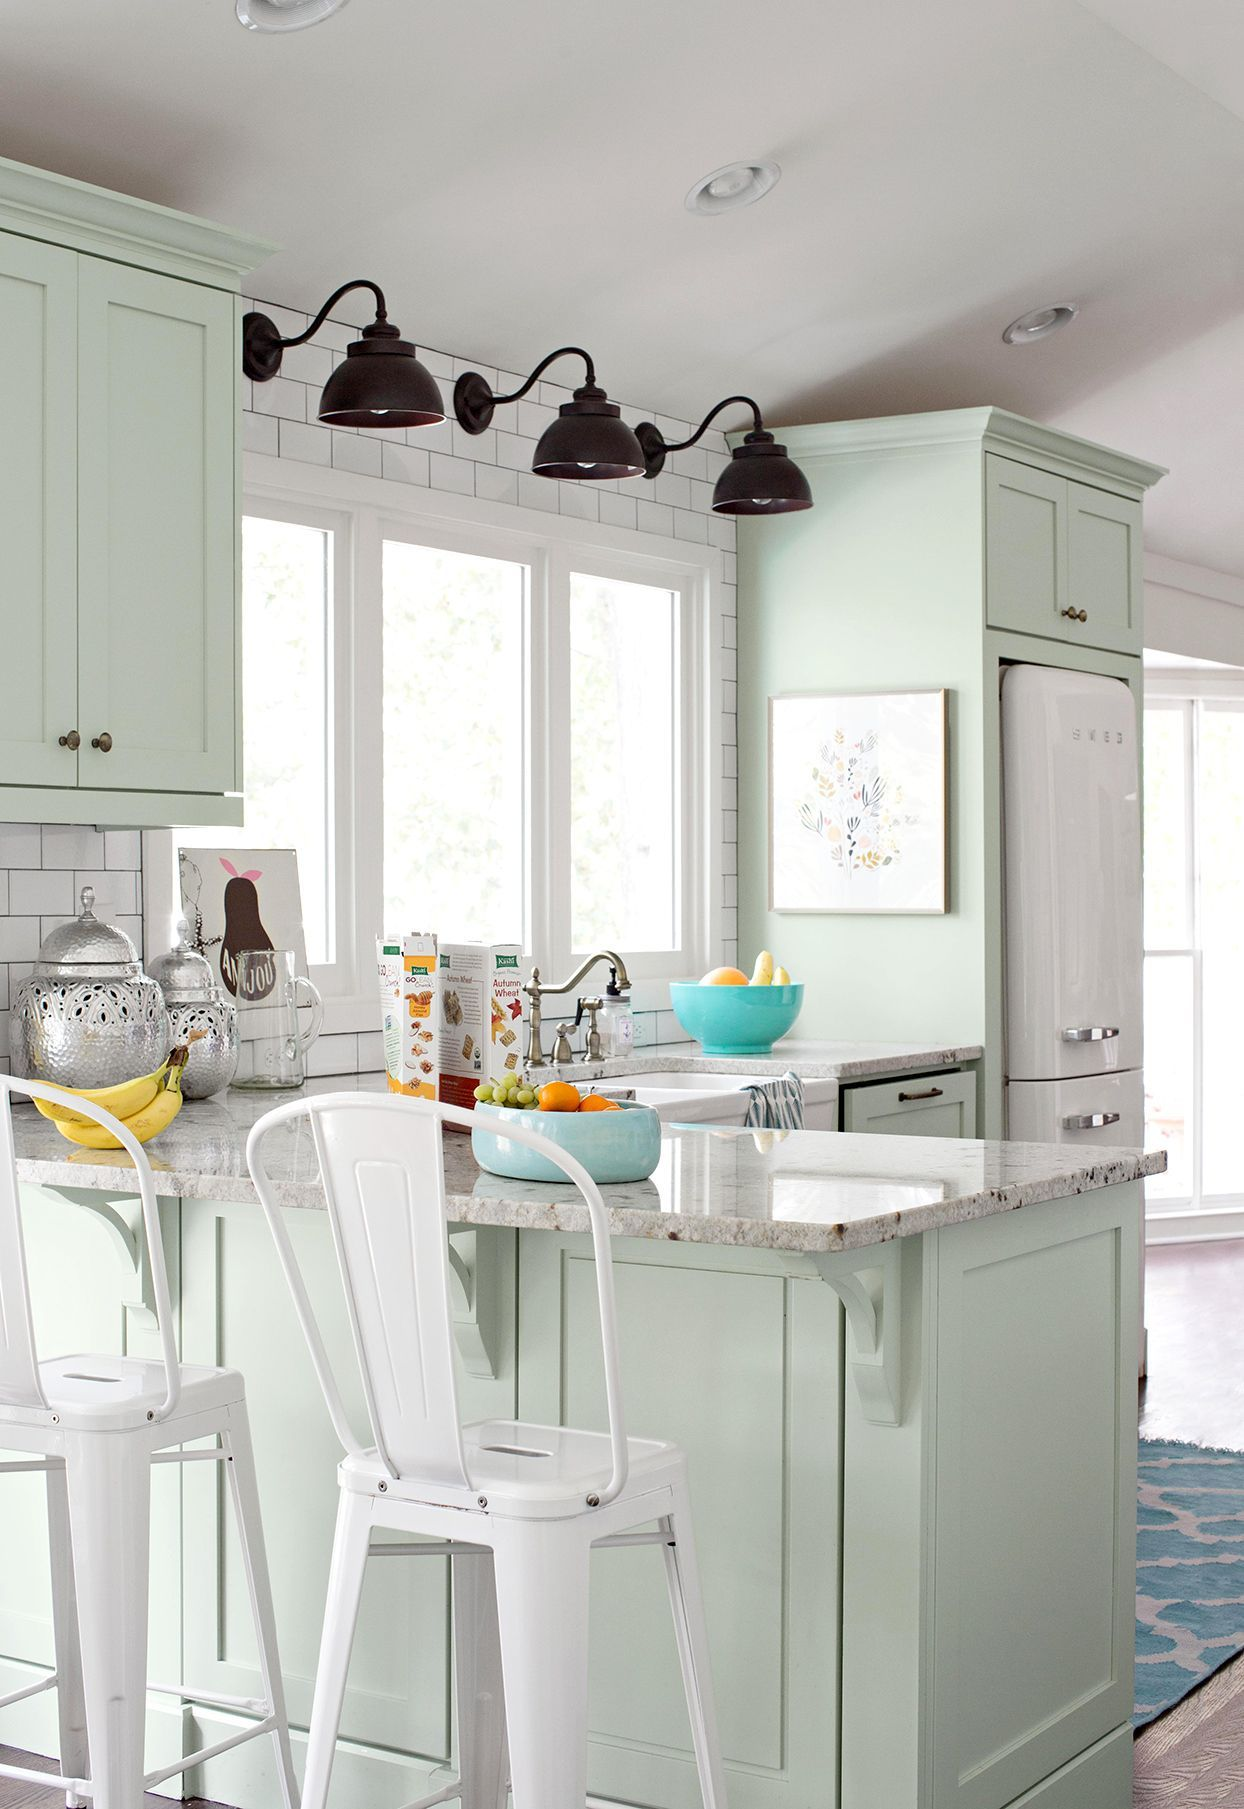 25 Winning Kitchen Color Schemes For A Look You Ll Love Forever In 2020 Green Kitchen Cabinets Mint Green Kitchen Mint Kitchen